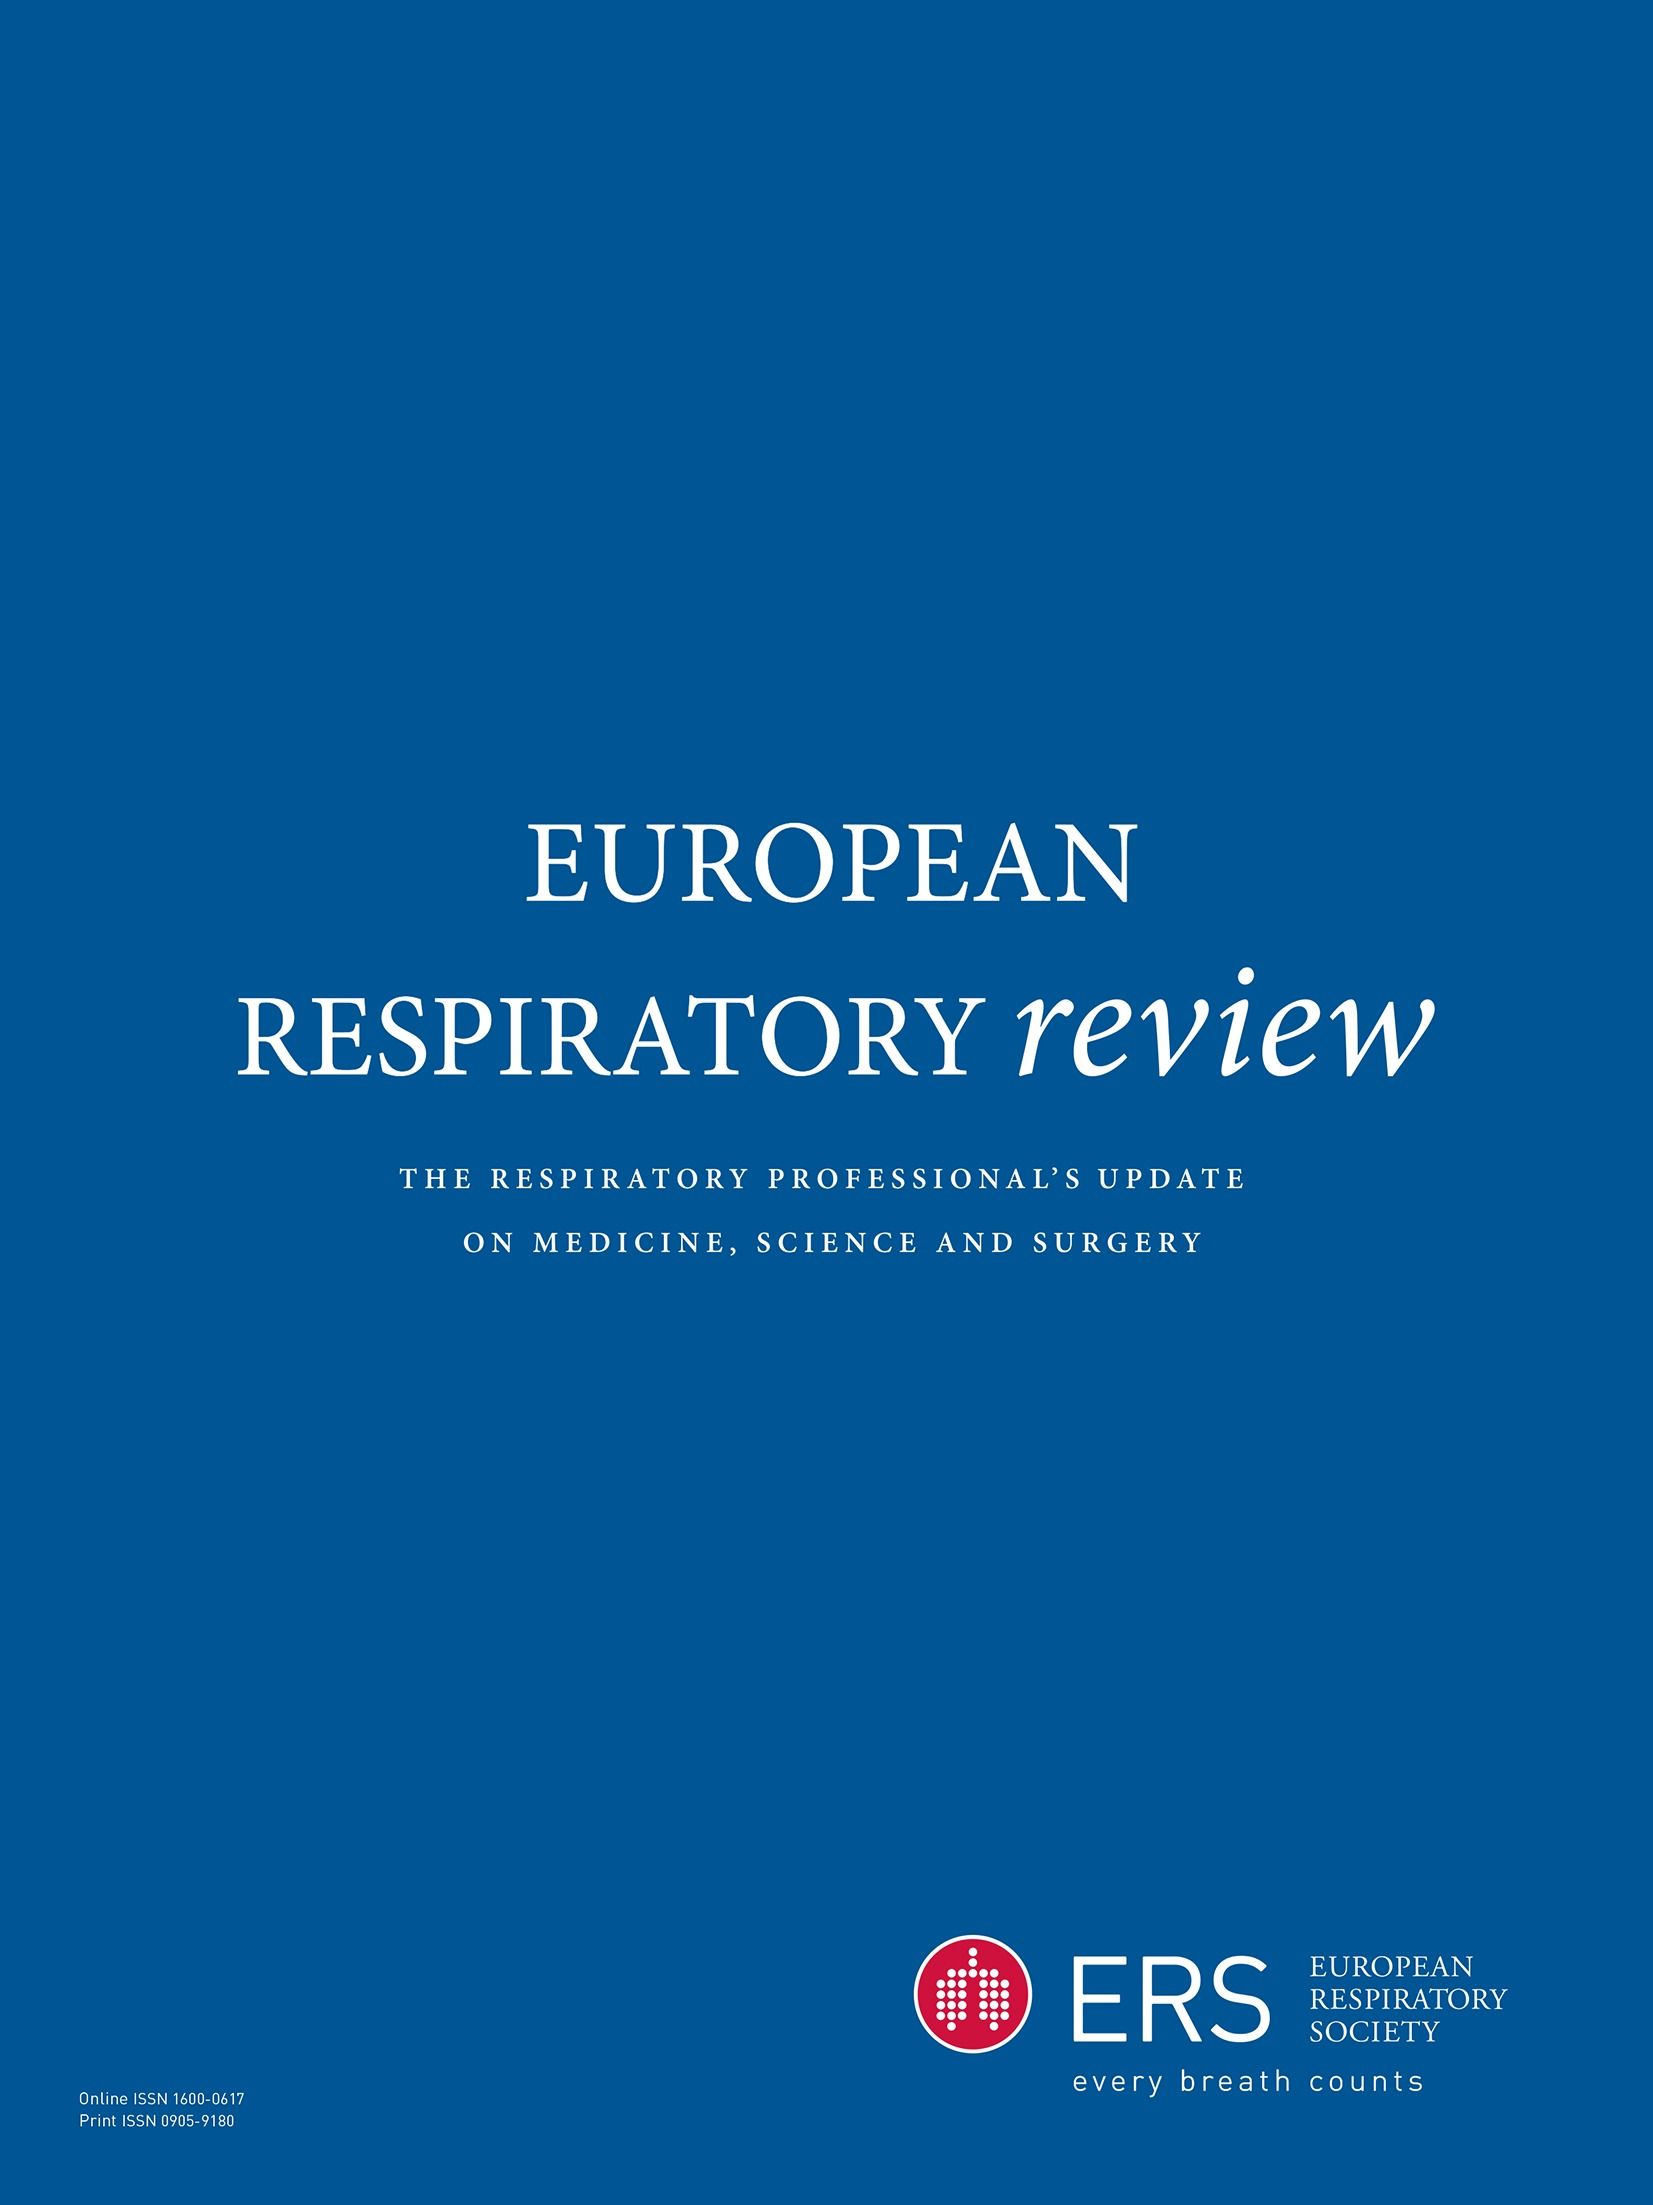 Should I stay or should I go? COPD and air travel | European